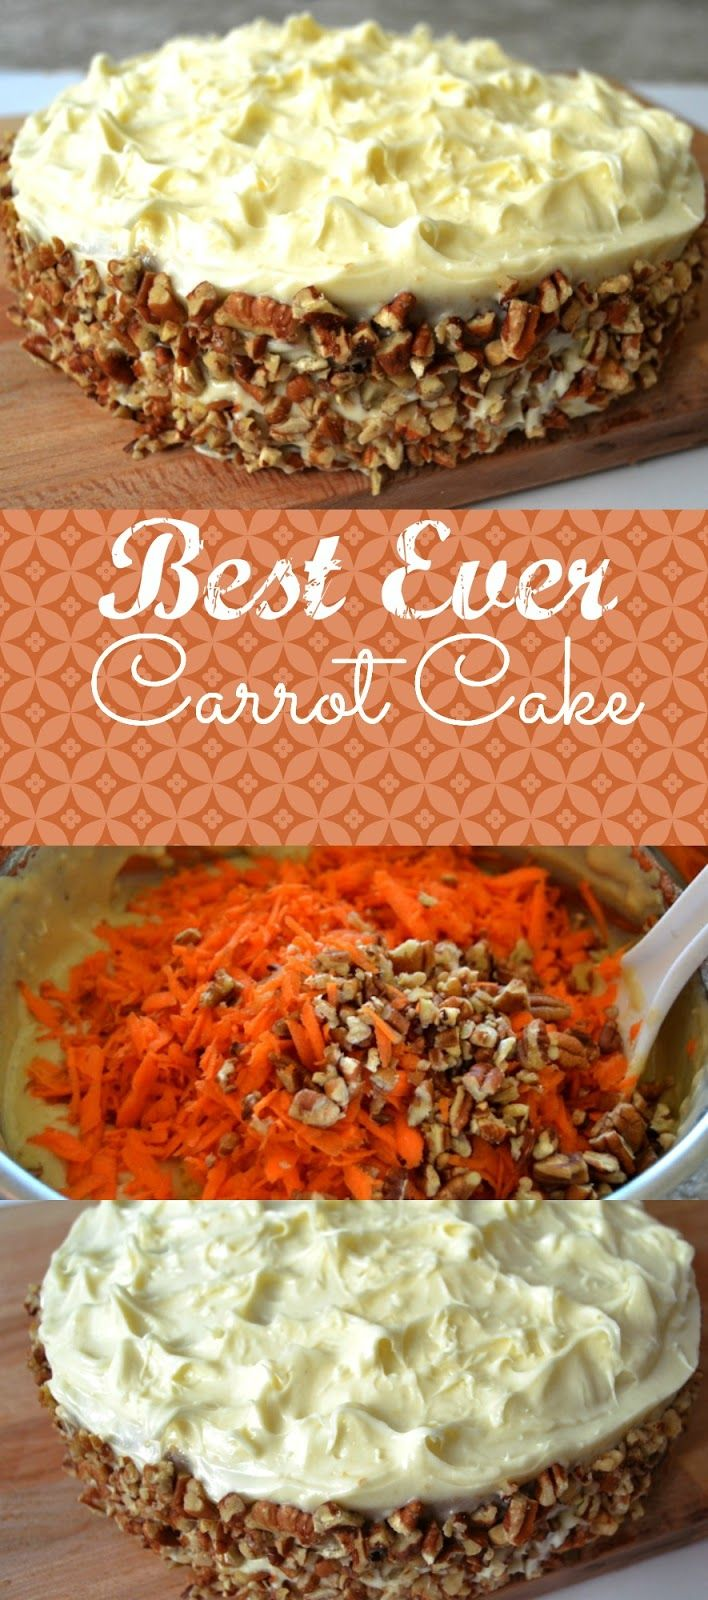 Best Ever Carrot Cake (includes caramel sauce layer that absorbs into bottom layer before adding cream cheese icing)